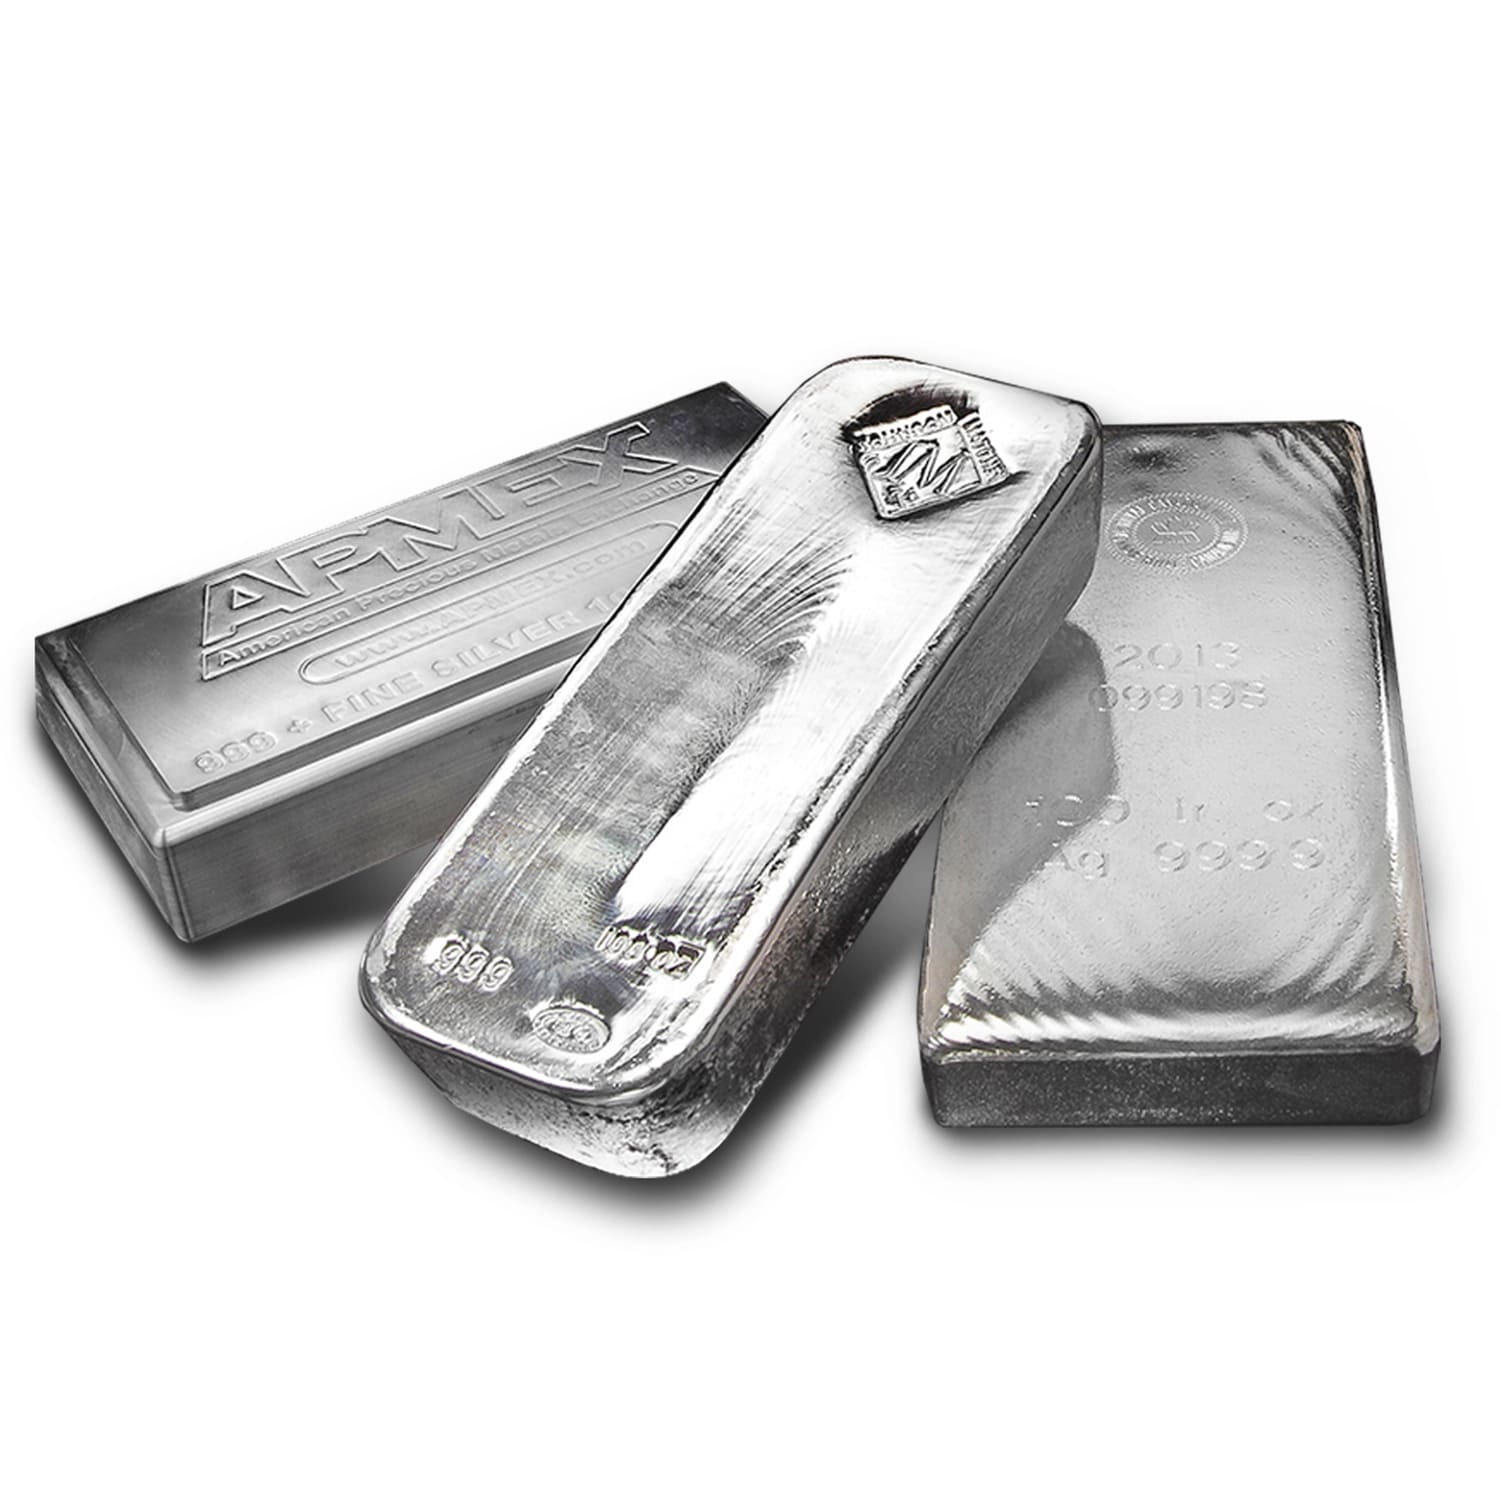 100.44 oz Silver Bar - Secondary Market